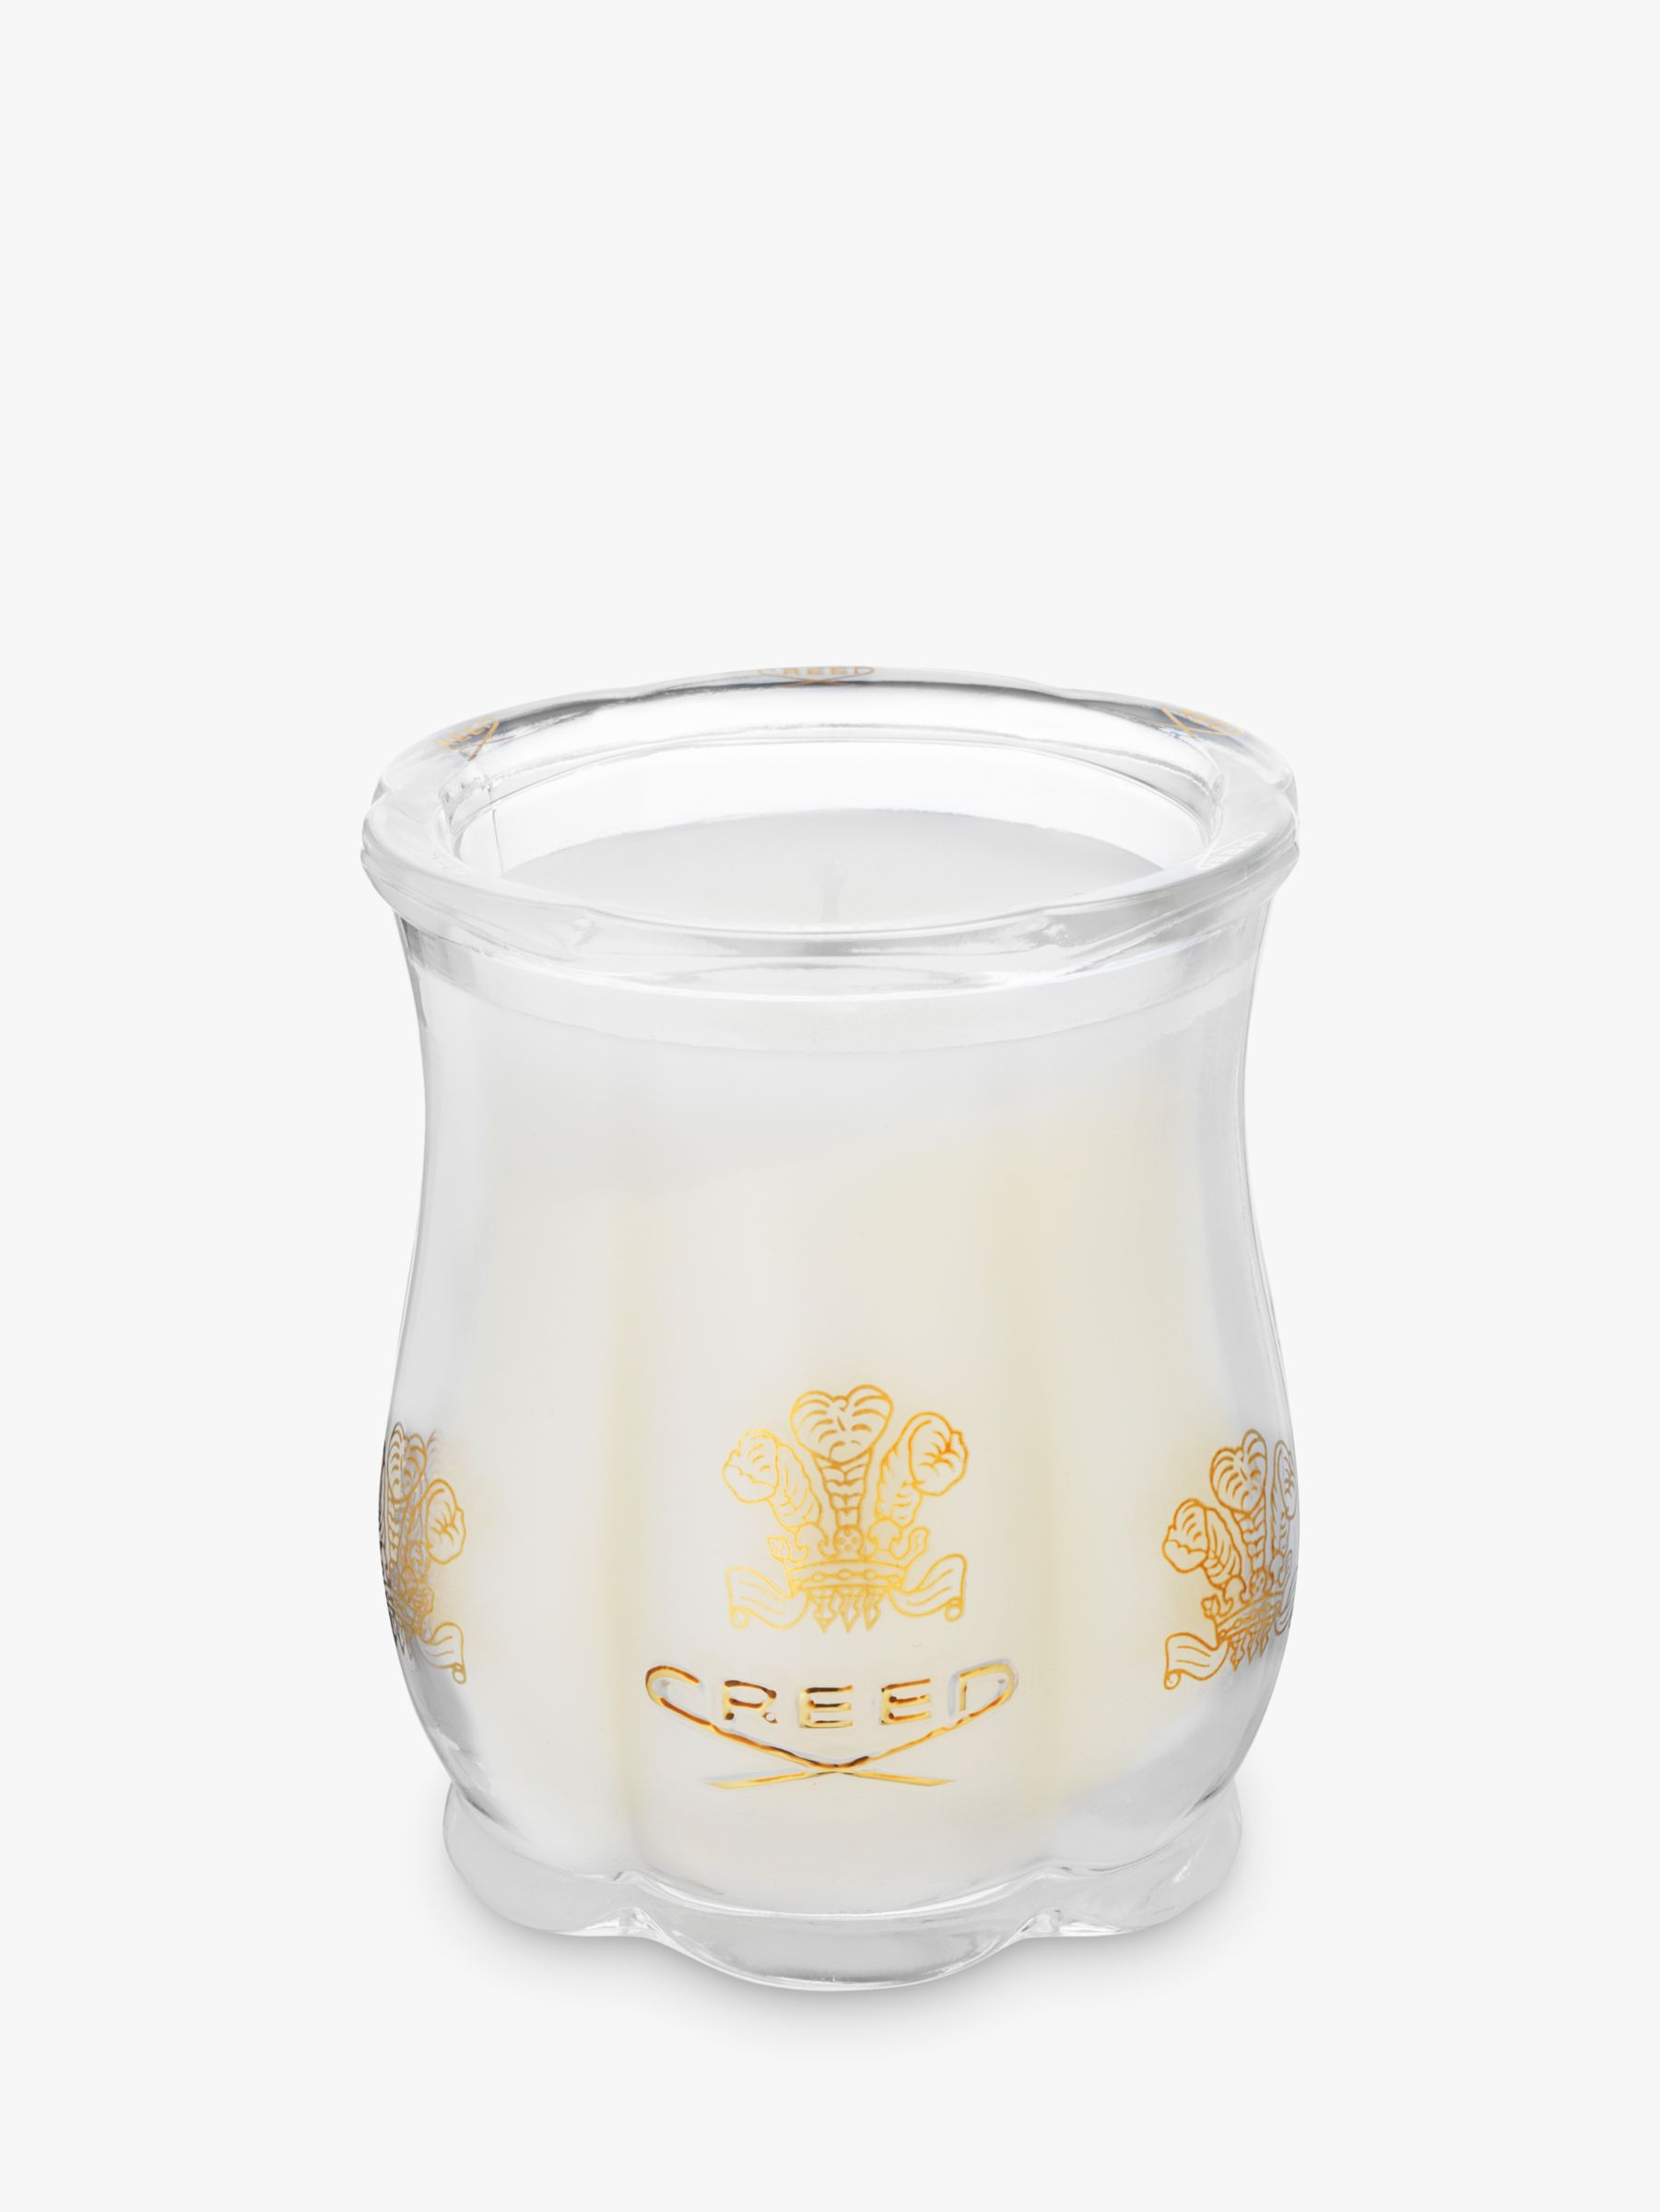 Creed CREED Spring Flower Scented Candle, 200g